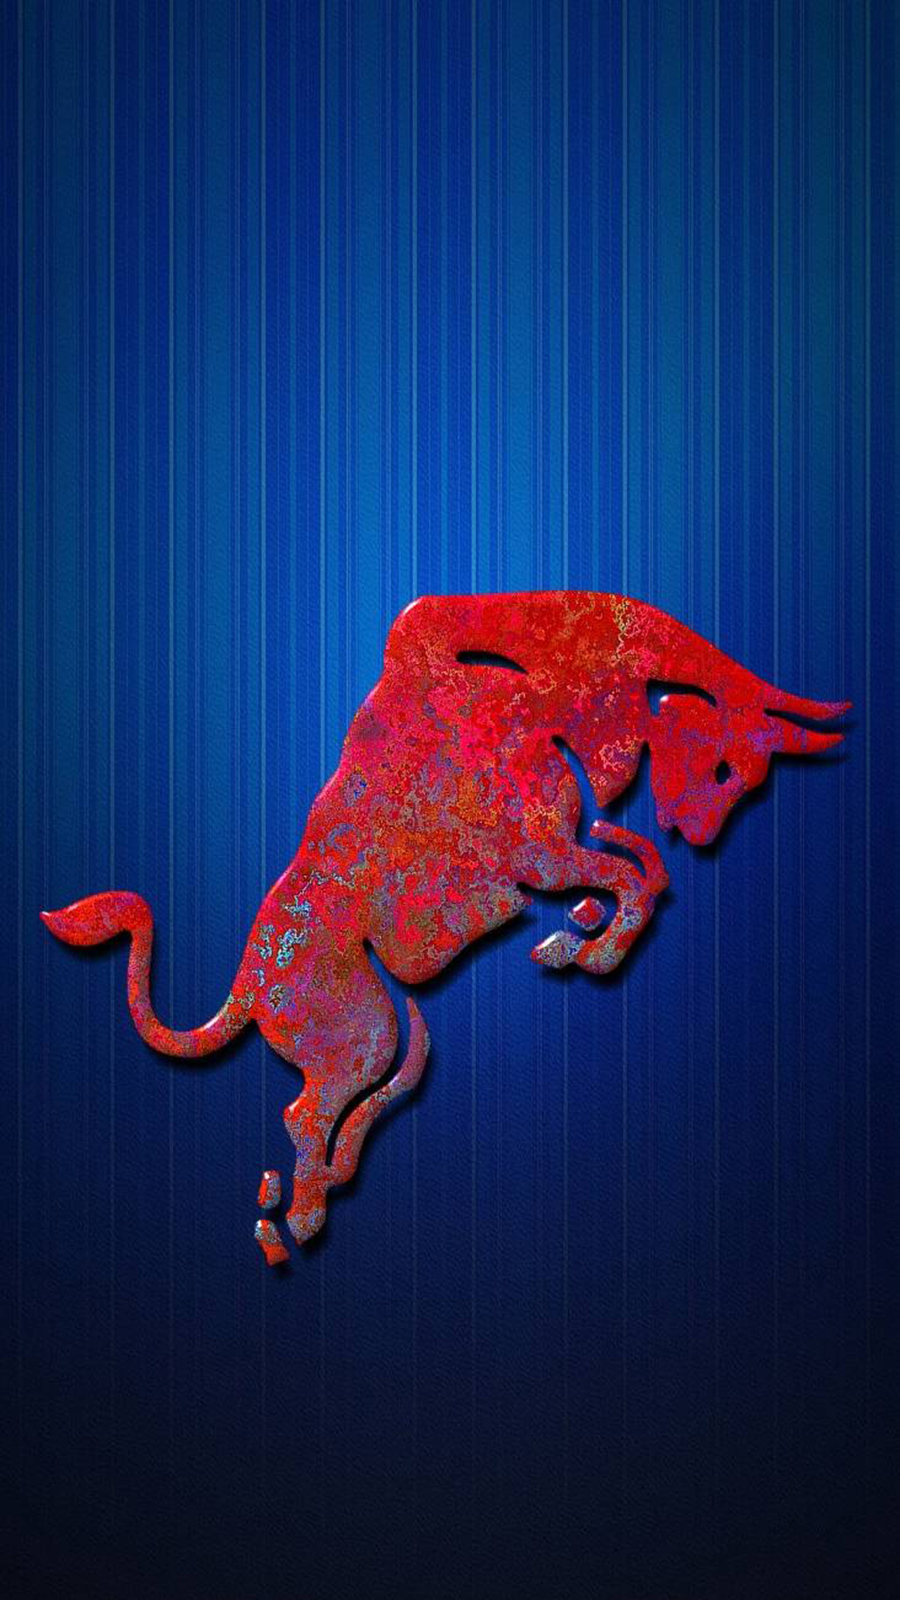 Red Bull Wallpapers Free Download For Your Device